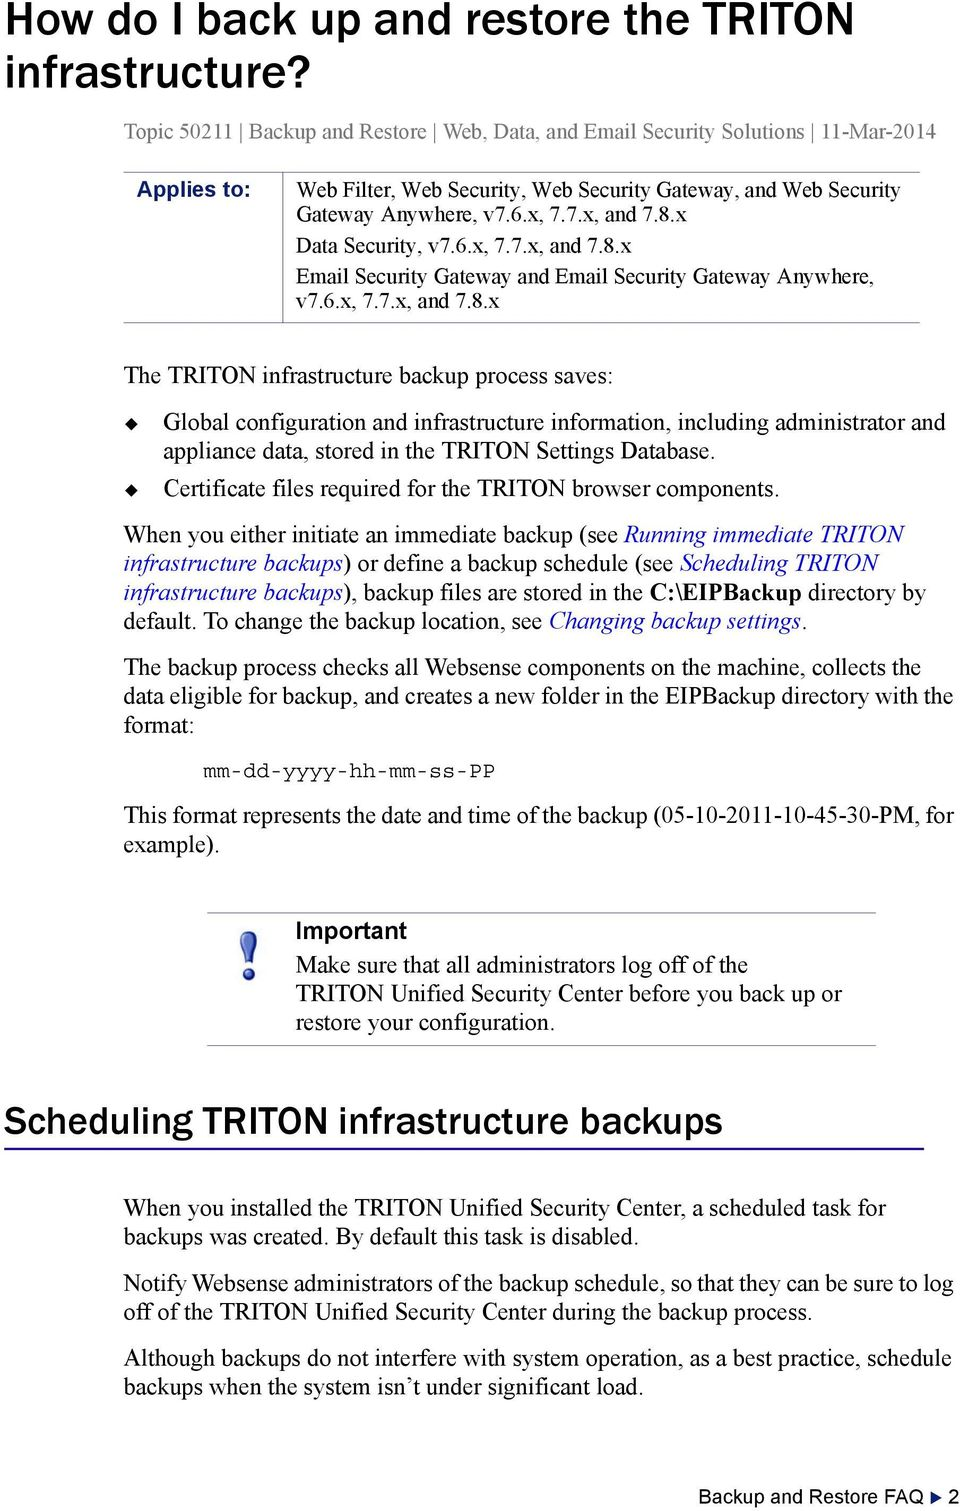 8.x Data Security, v7.6.x, 7.7.x, and 7.8.x Email Security Gateway and Email Security Gateway Anywhere, v7.6.x, 7.7.x, and 7.8.x The TRITON infrastructure backup process saves: Global configuration and infrastructure information, including administrator and appliance data, stored in the TRITON Settings Database.